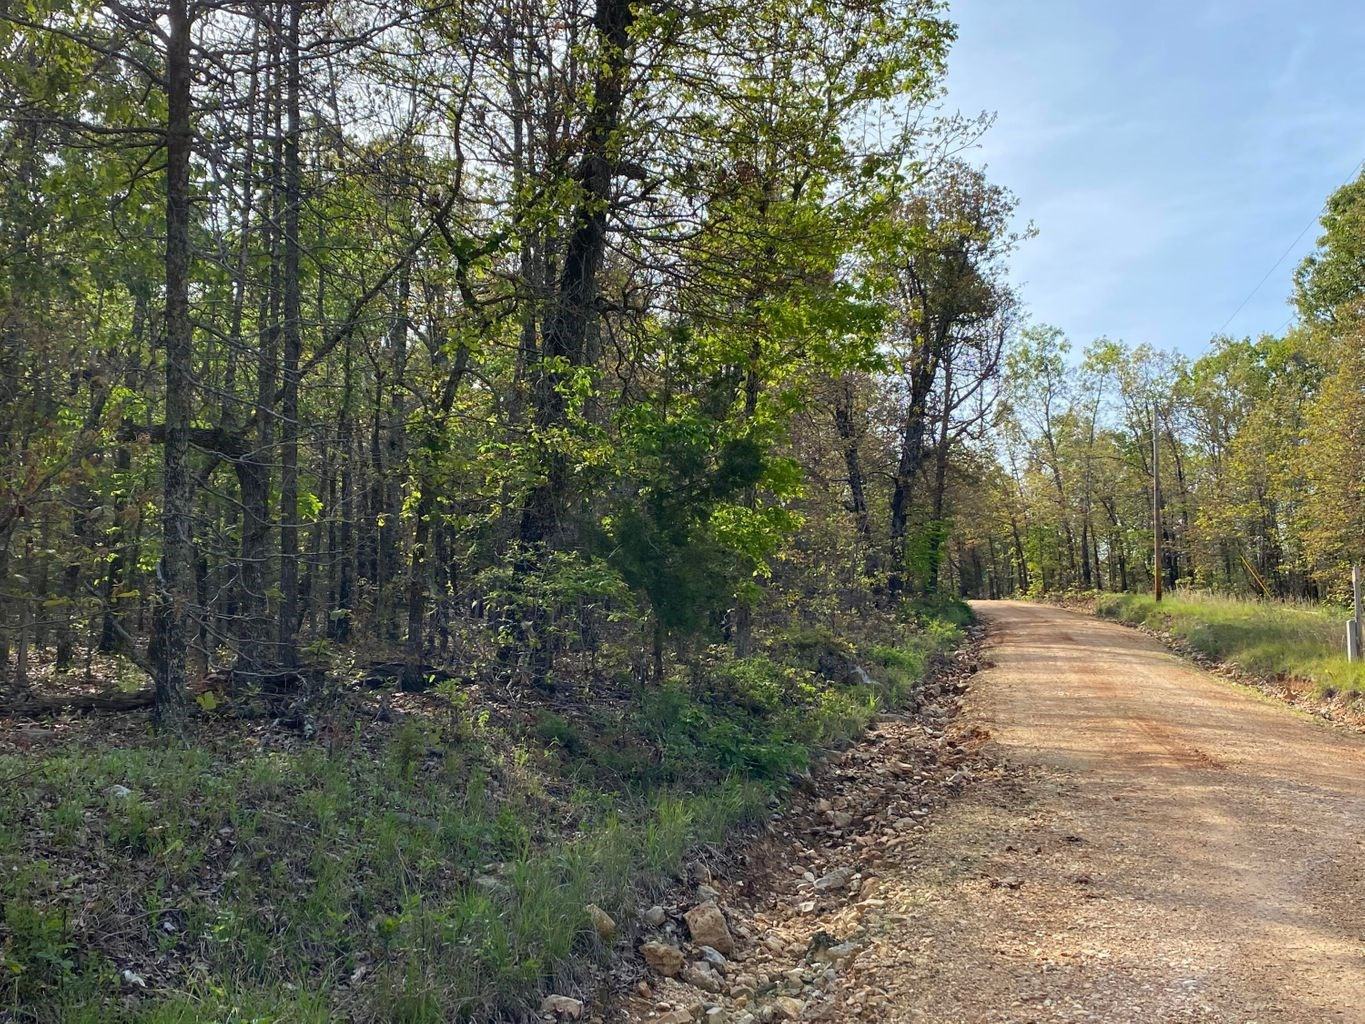 Vacant Land for Farming with Lots of Timber